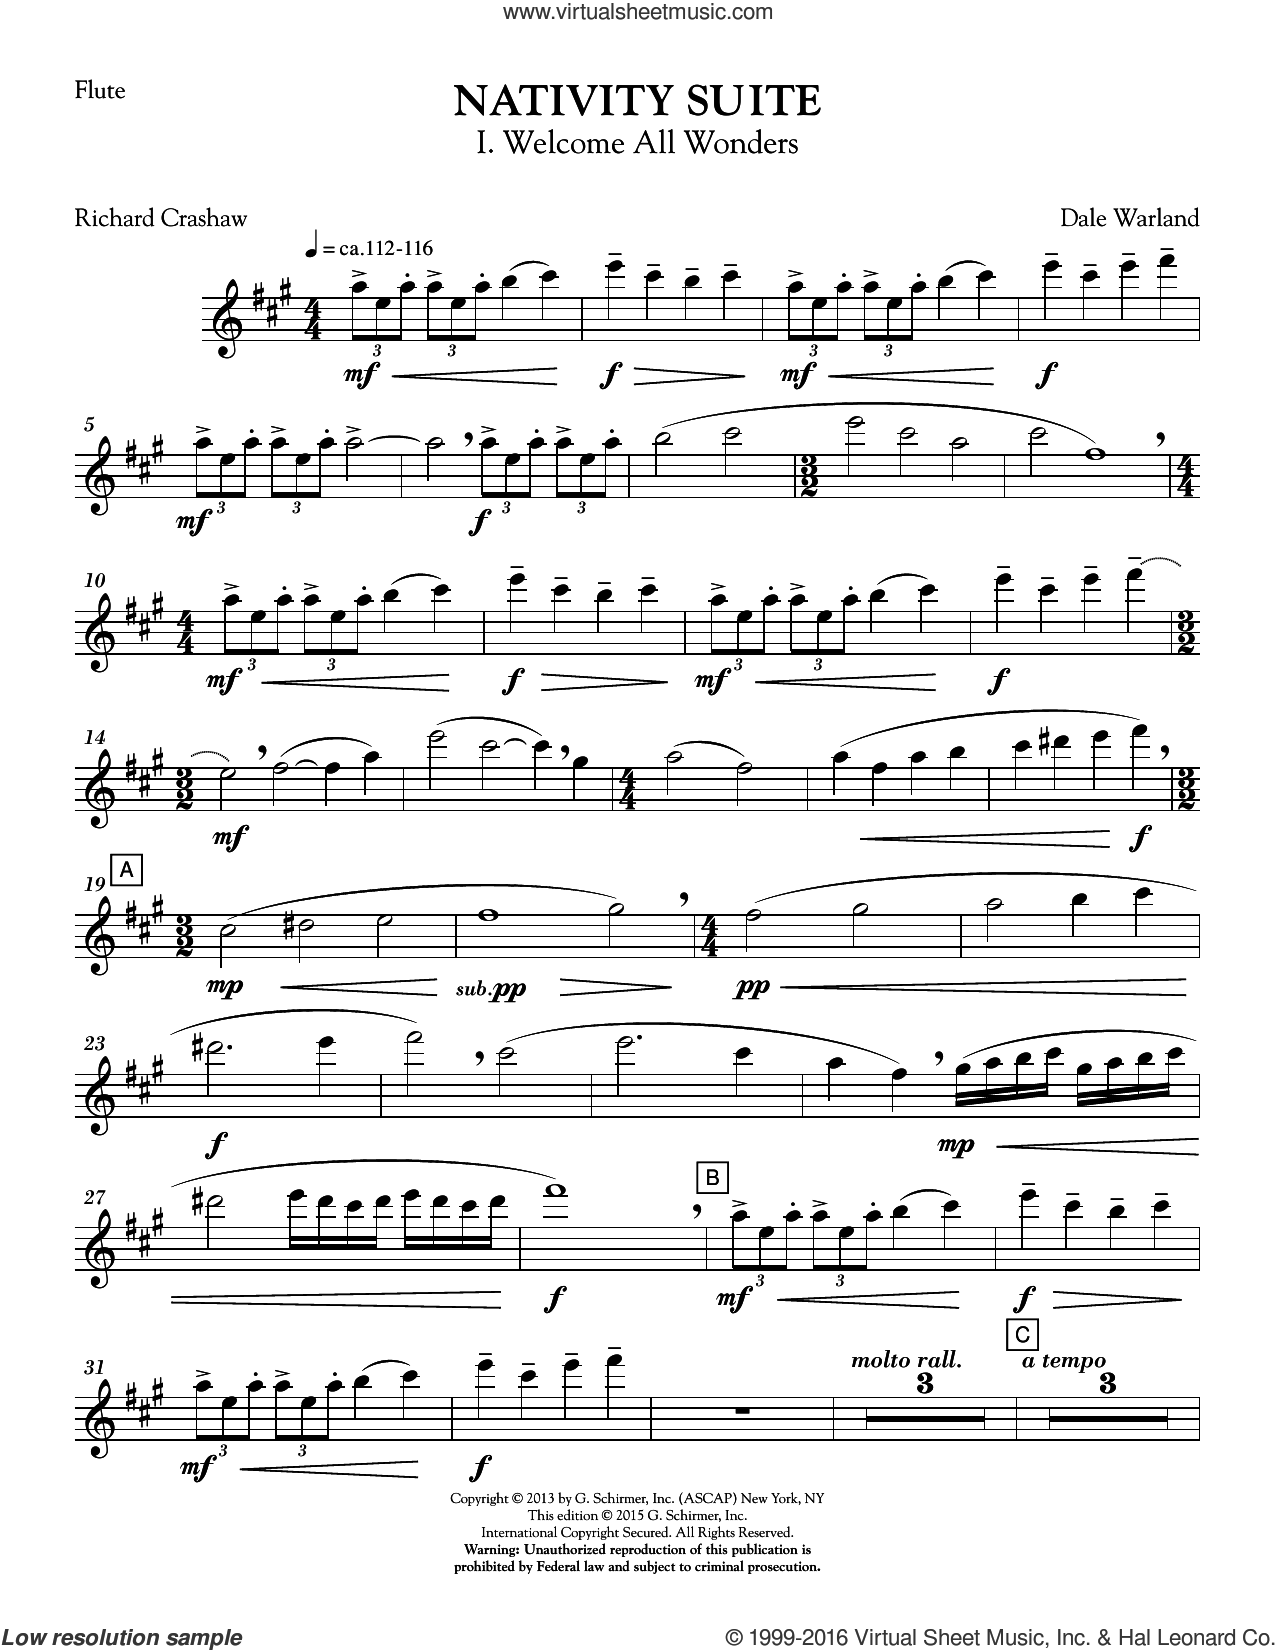 Nativity Suite (COMPLETE) sheet music for orchestra by Dale Warland. Score Image Preview.